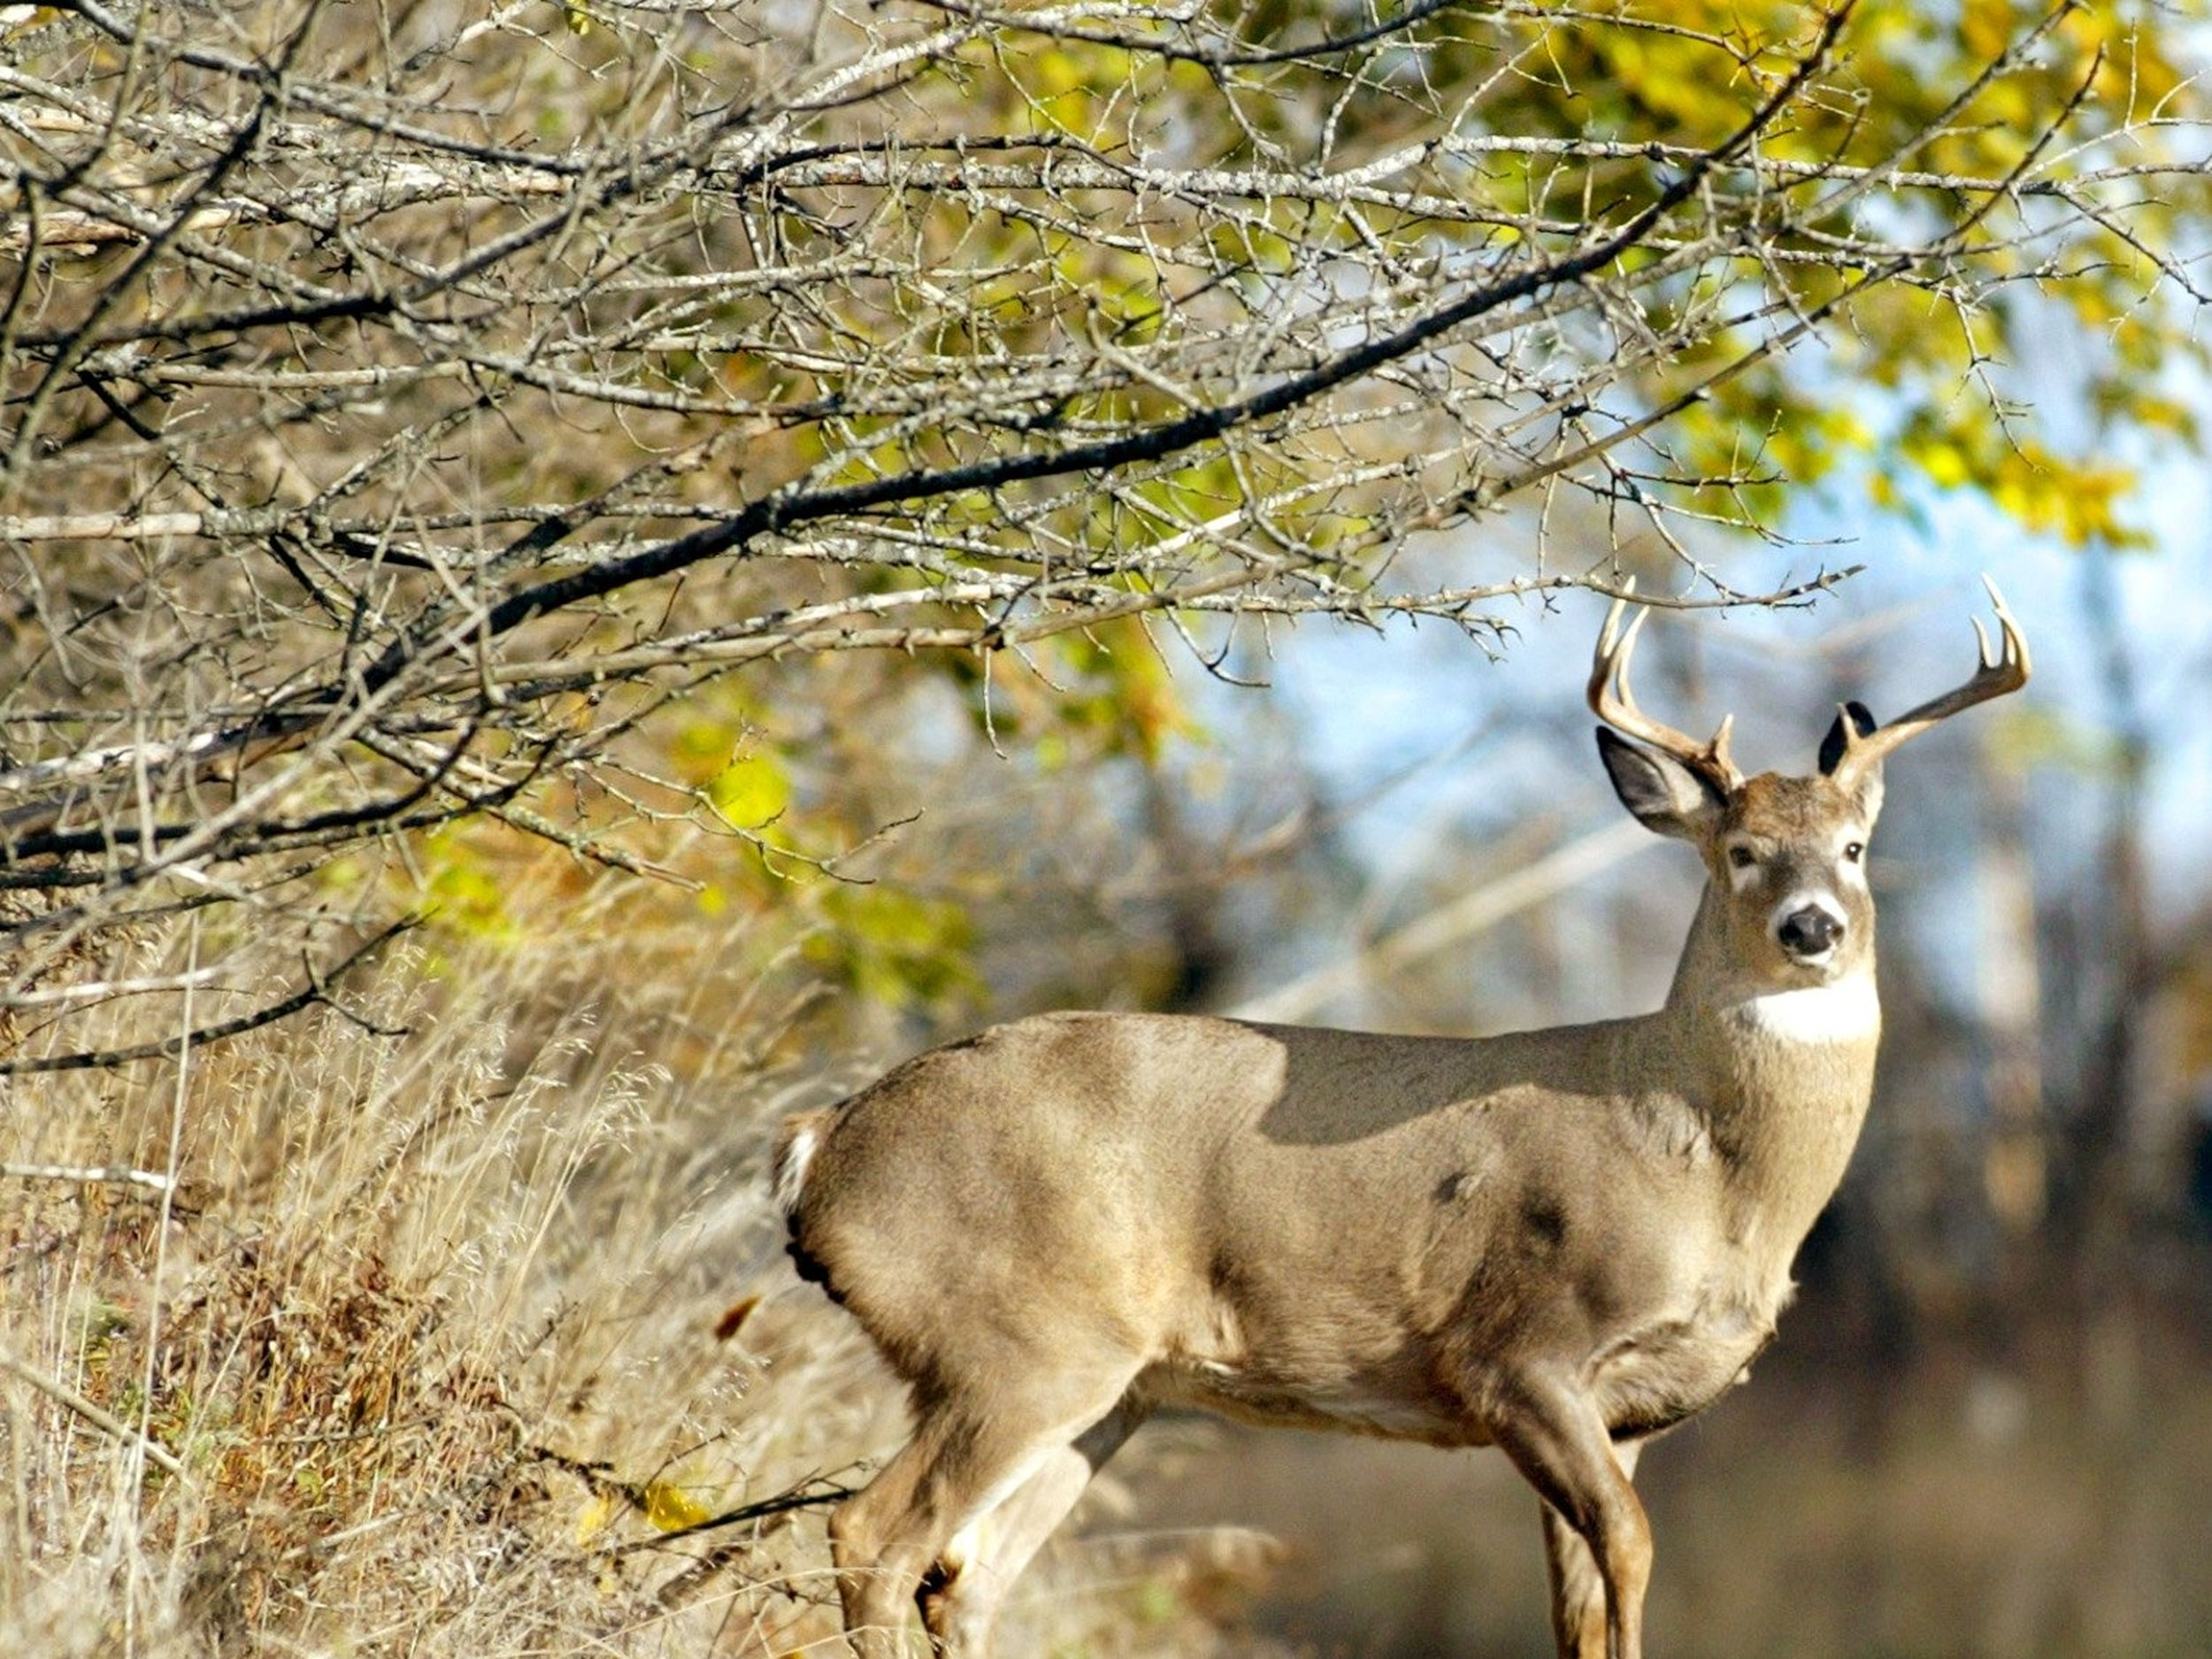 The Rut Leads Whitetails To Abandon Wary Ways | The with Indiana 2020 Whitetail Deer Rut Timing Predictions